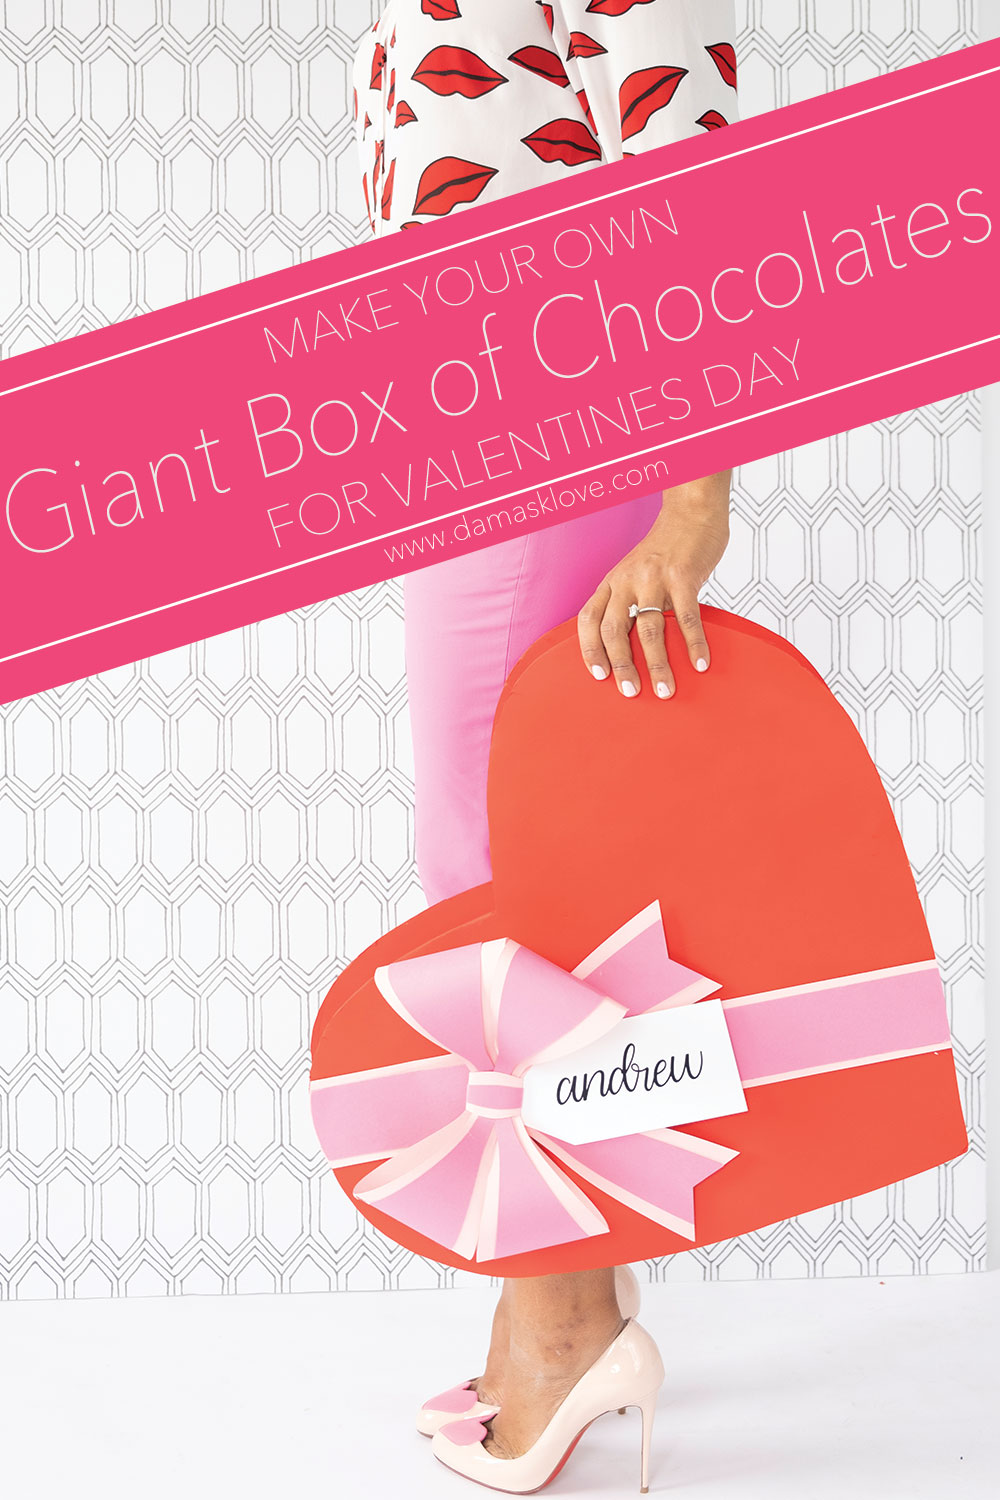 How To Make A Giant Box Of Chocolates For Valentine S Day Damask Love